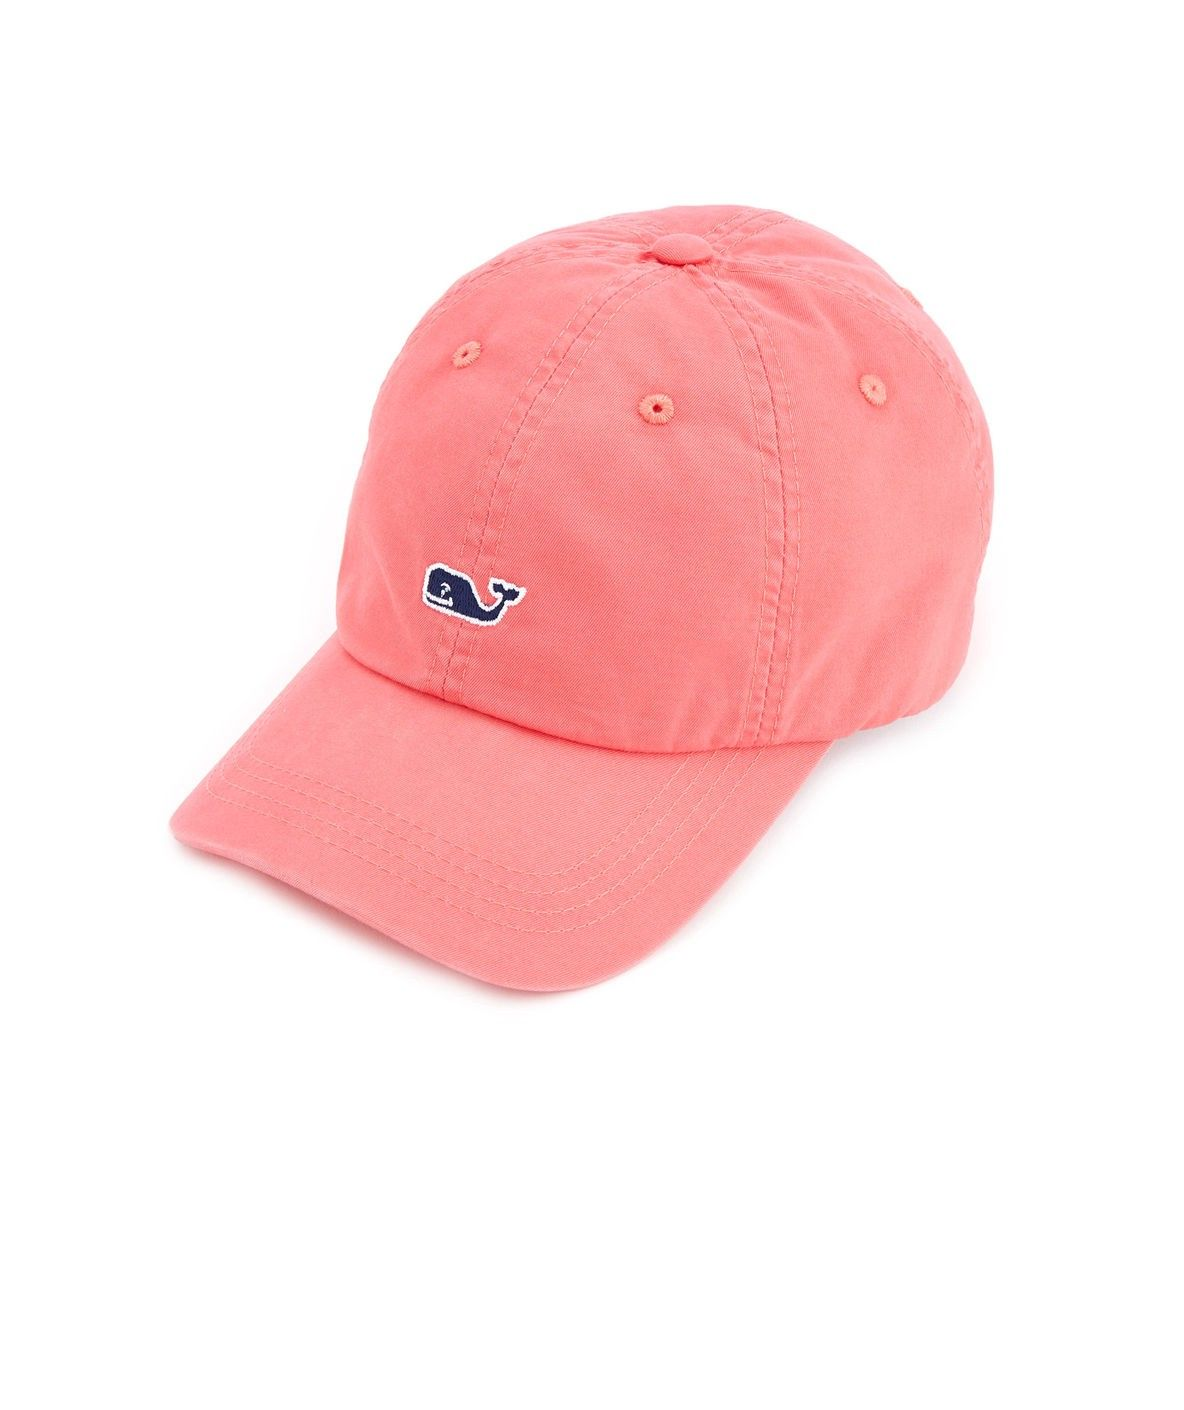 77763ef1923 Vineyard Vines Kids Classic Logo Baseball Hat - Flamingo 1Sz ...